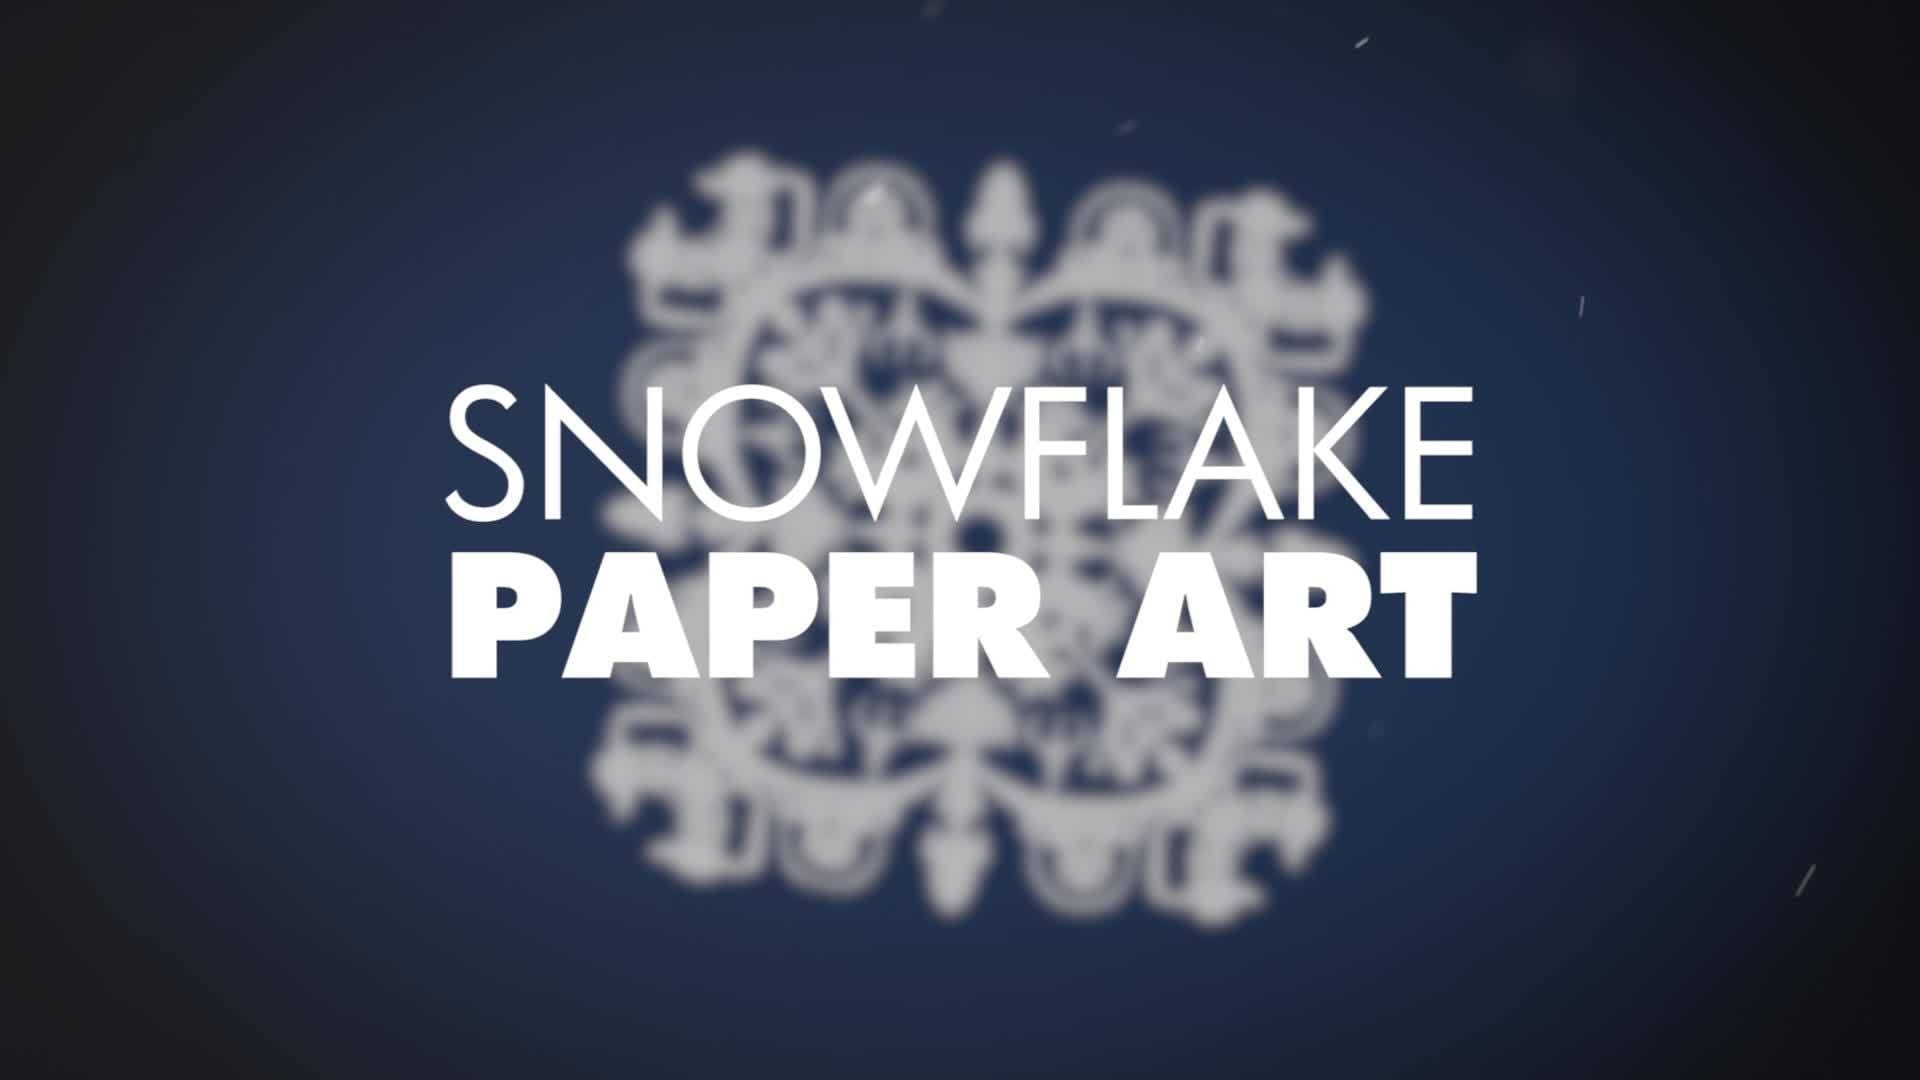 Toy Story Snowflake Paper Art   Oh My Disney